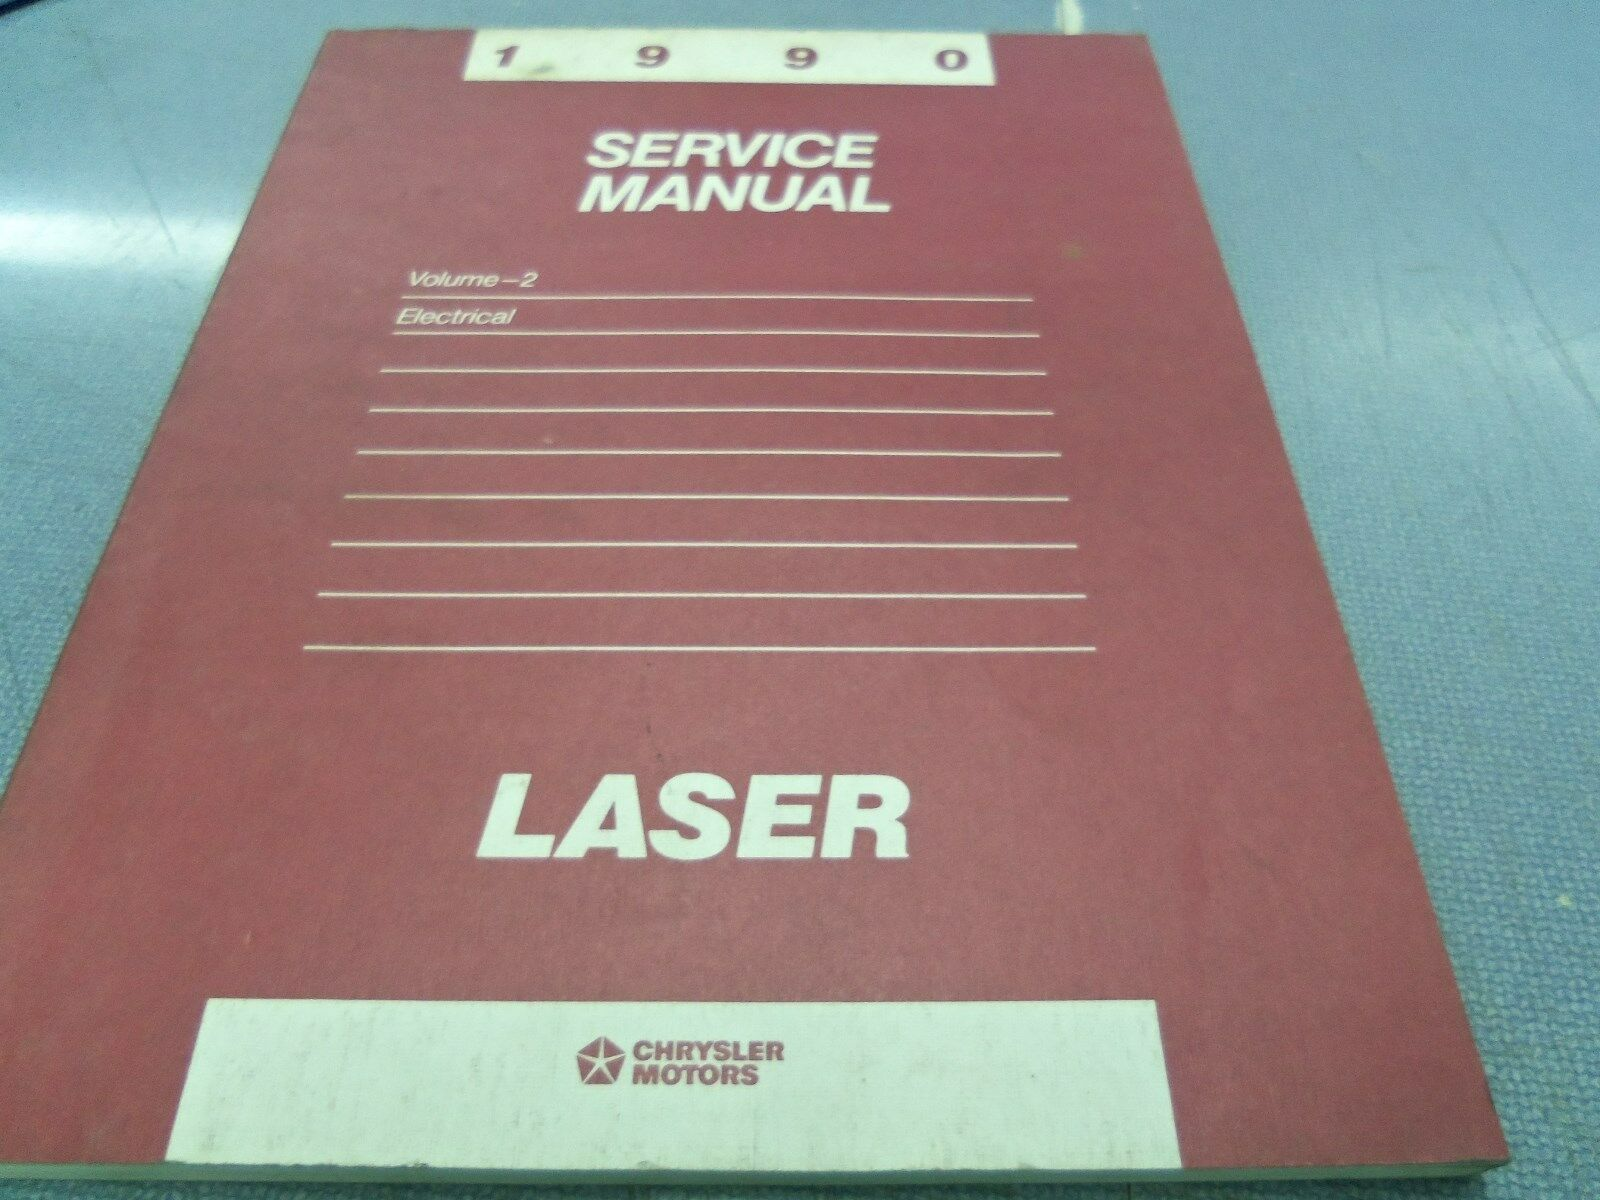 Chrysler Motors 1990 Plymouth Laser Service Manual Volume 2 Electrical 1 of  2Only 1 available ...